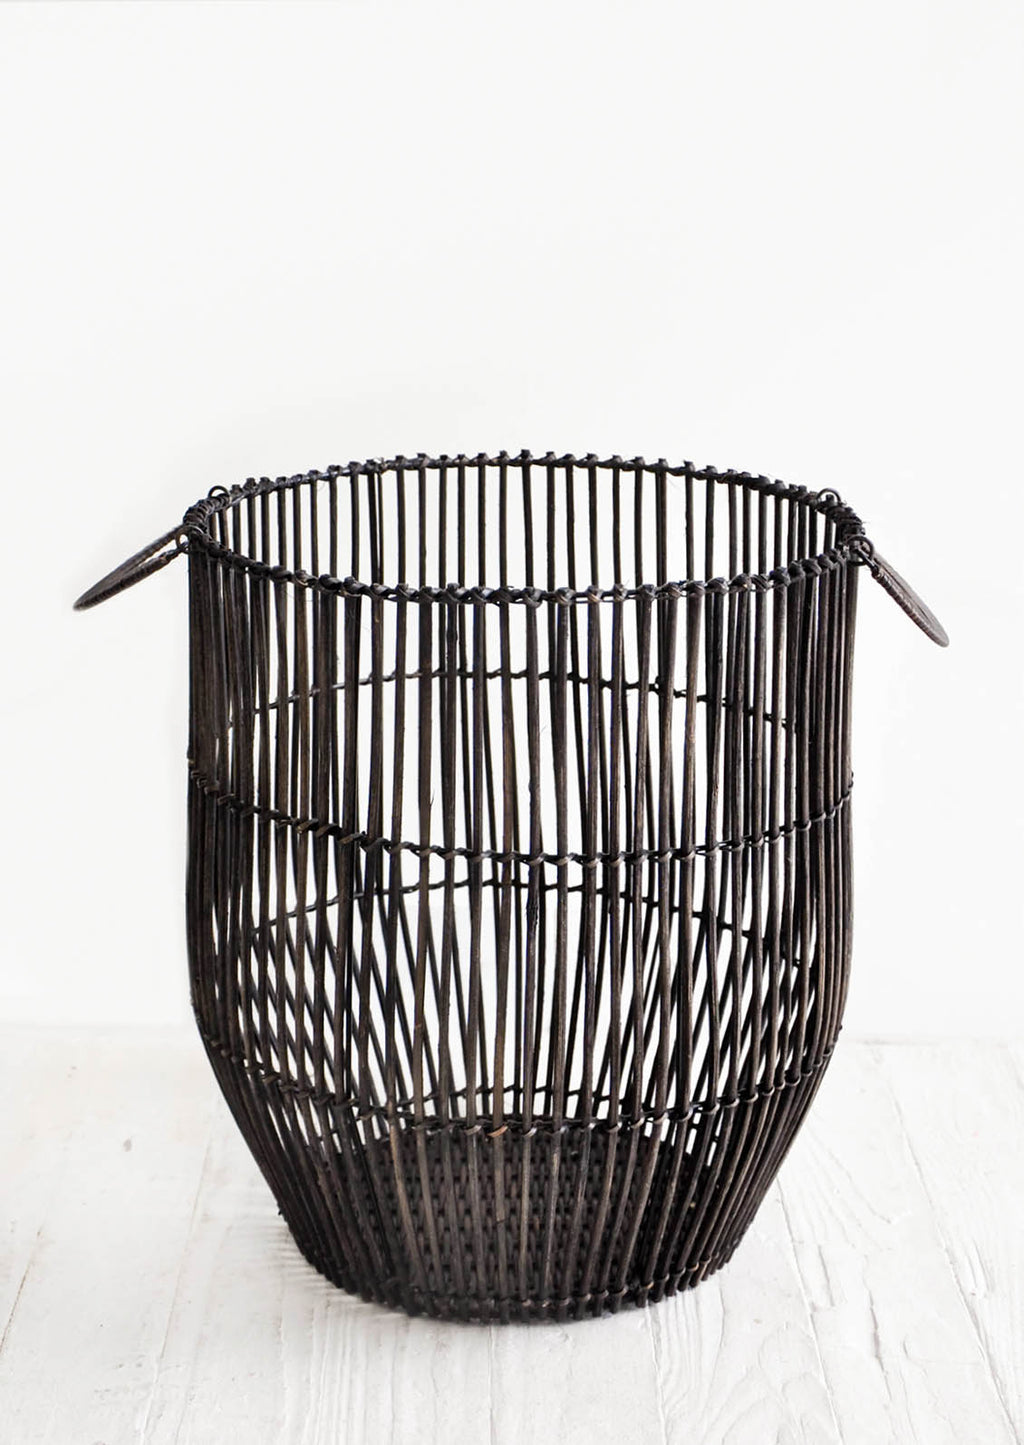 1: Round storage basket made from blackened rattan reeds with handles at sides